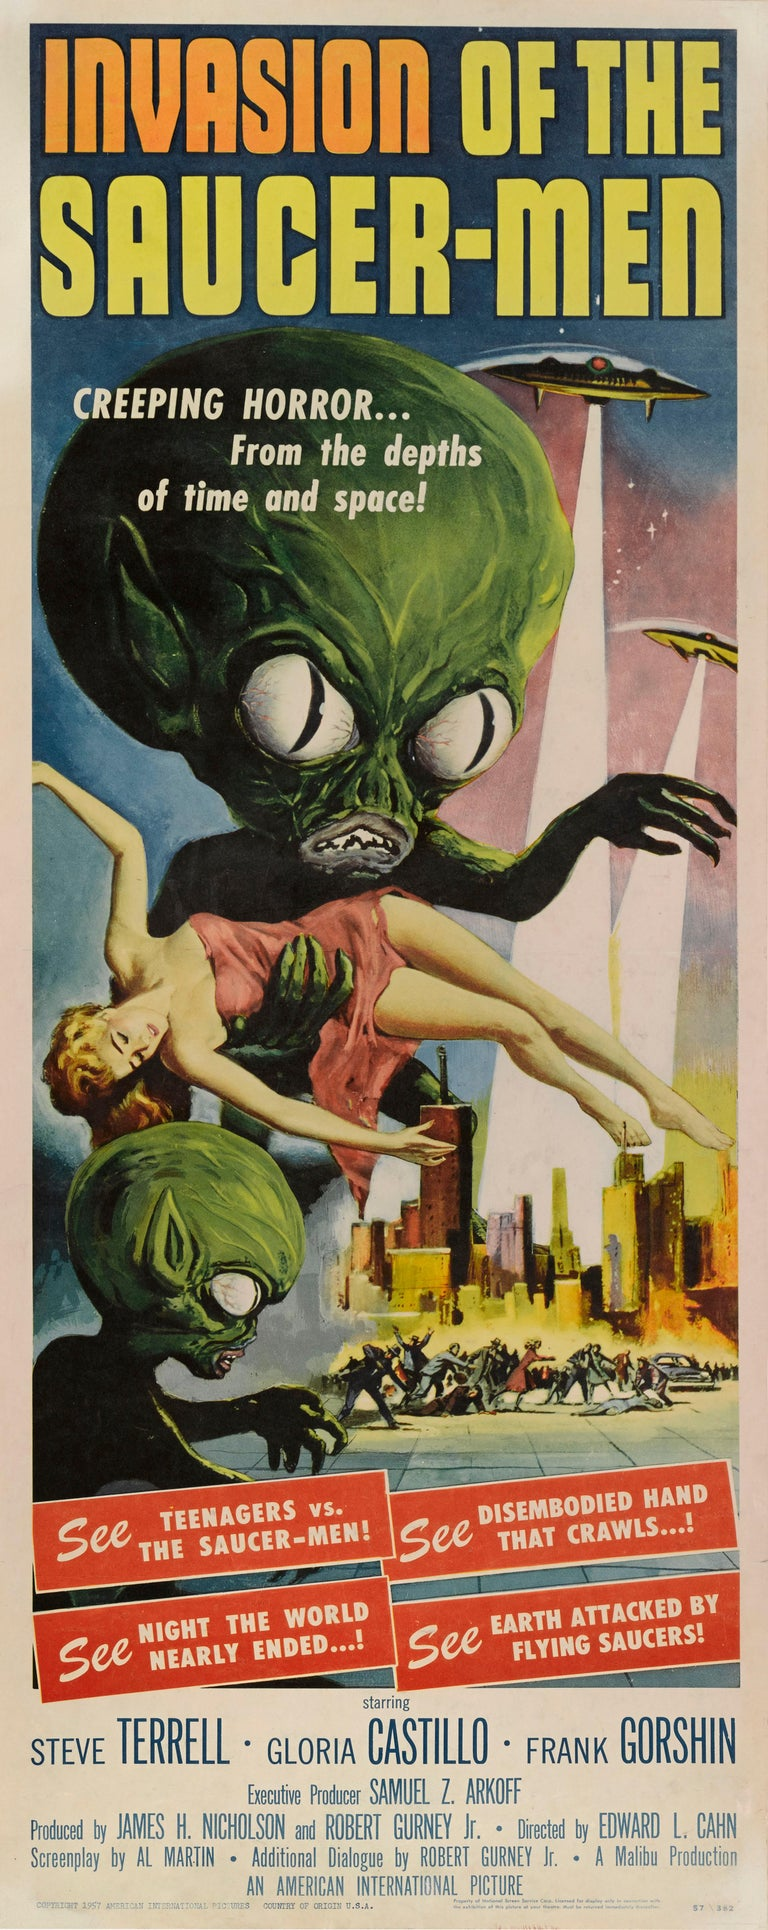 Original US film poster for the 1957 Science fiction movie. 1950s science fiction is populated by monsters and aliens. These fantastic creatures, state of the art in their time, now appear strangely dated, especially on the screen where their